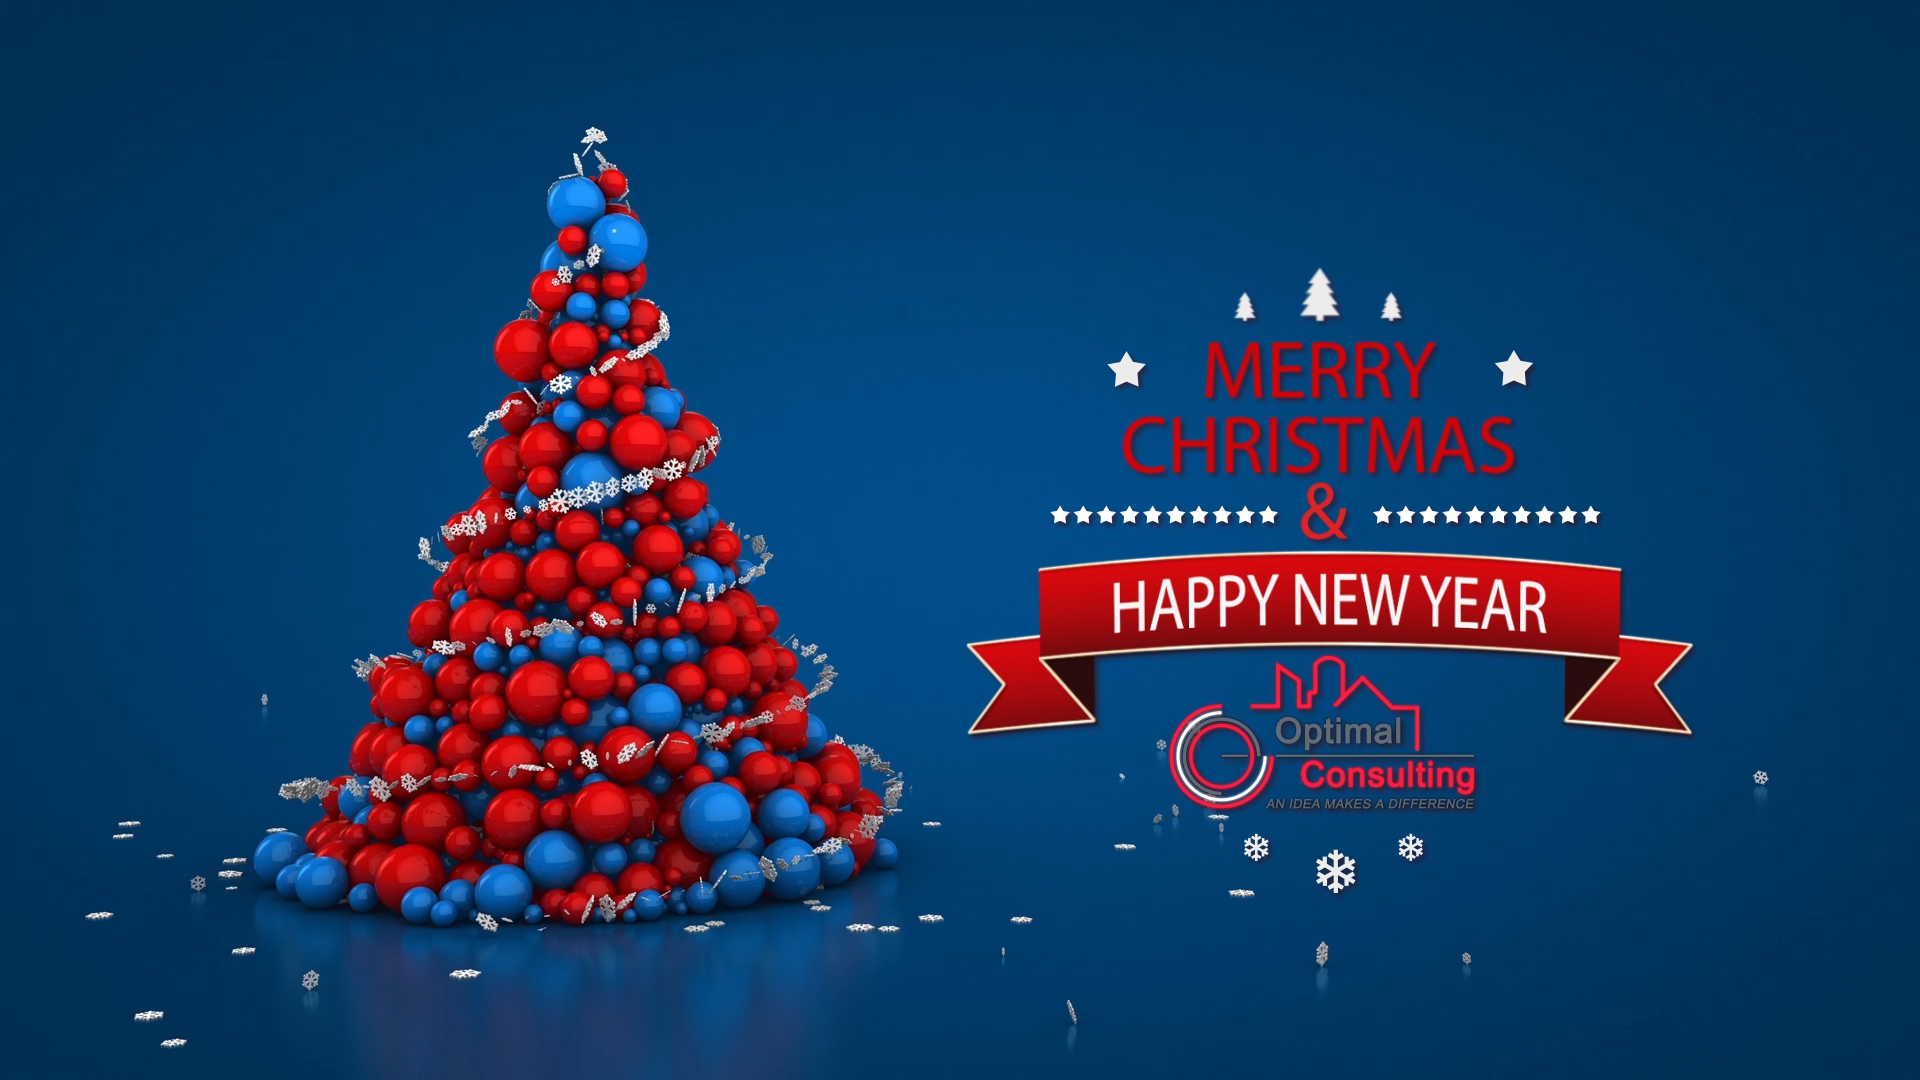 Christmas & New Year Animation for OPTIMAL Consulting Lebanon in 2015.